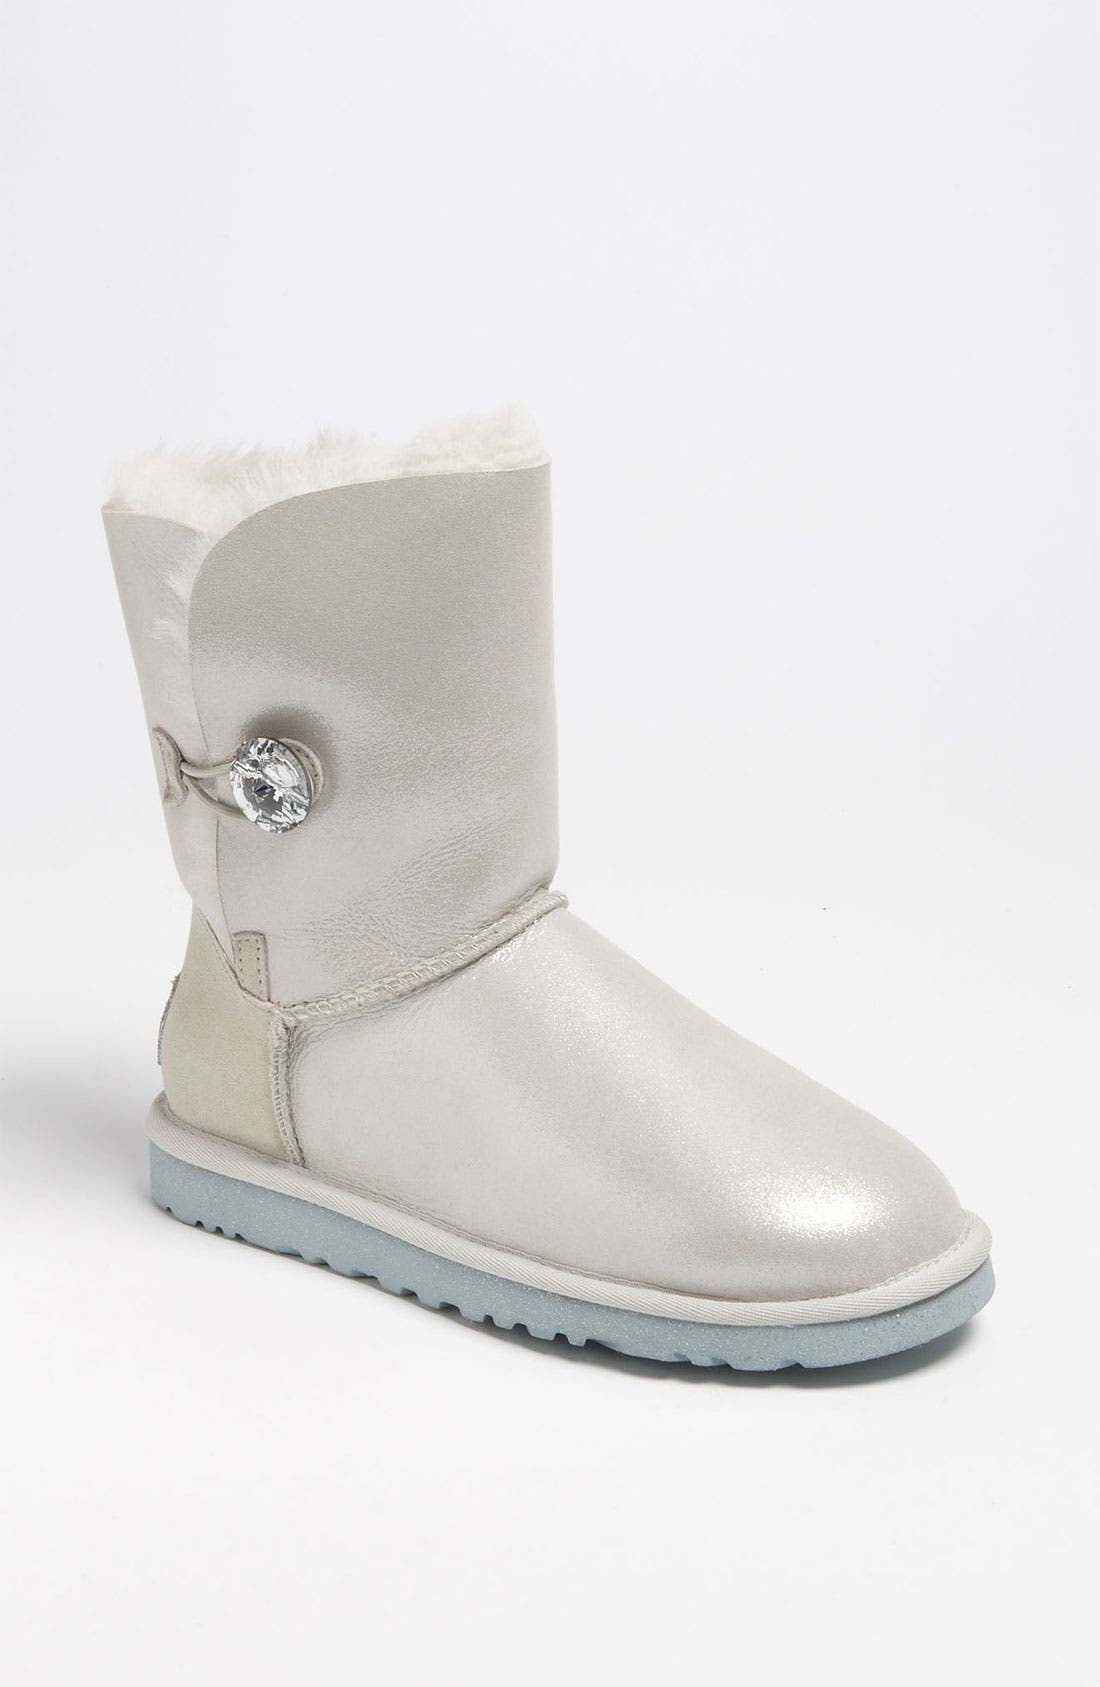 ugg australia bailey button i do boot